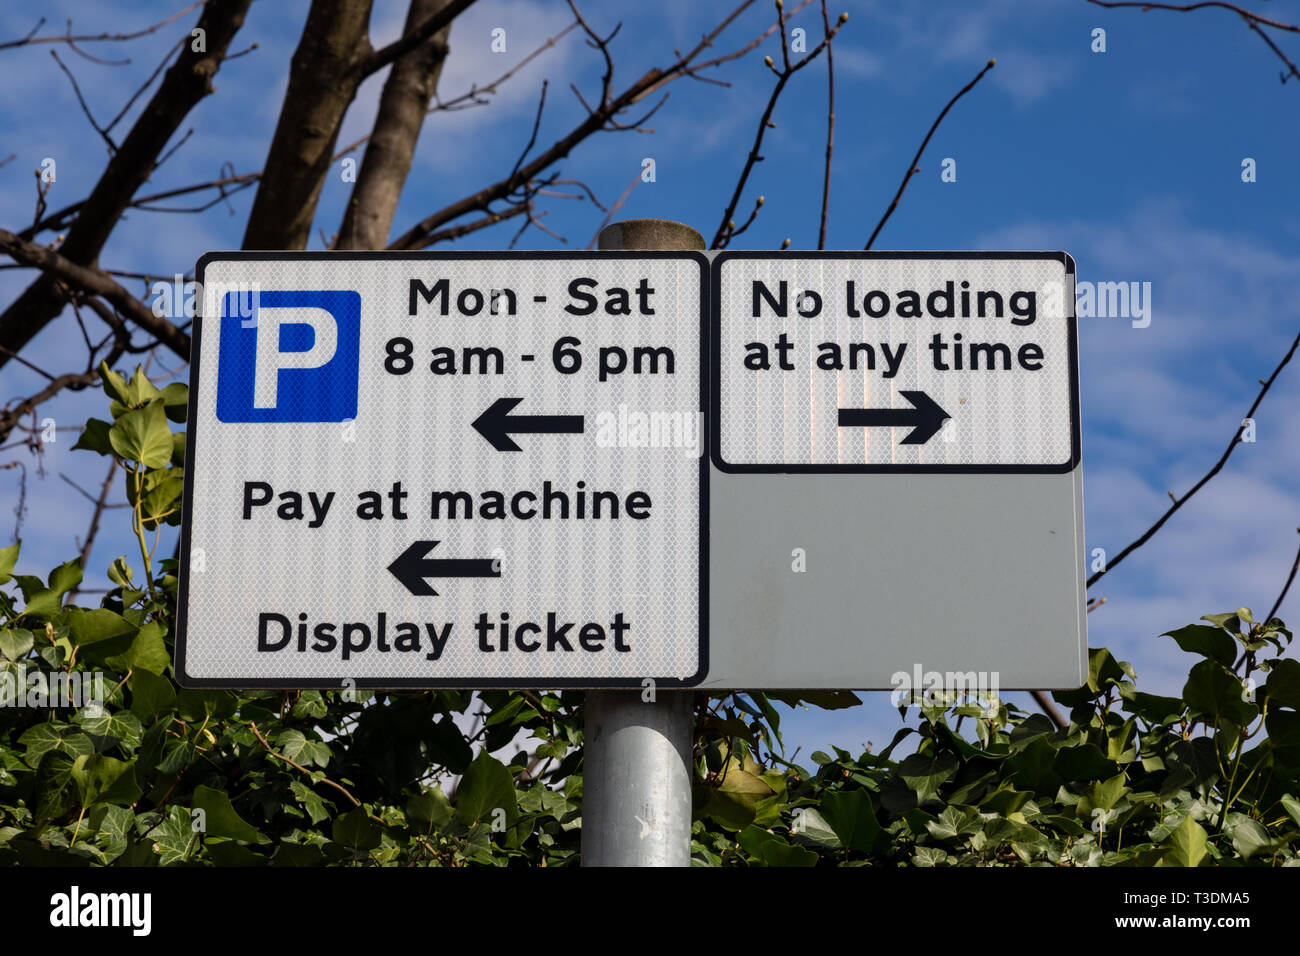 Street signs showing parking and loading restrictions St Helens Merseyside March 2019 Stock Photo